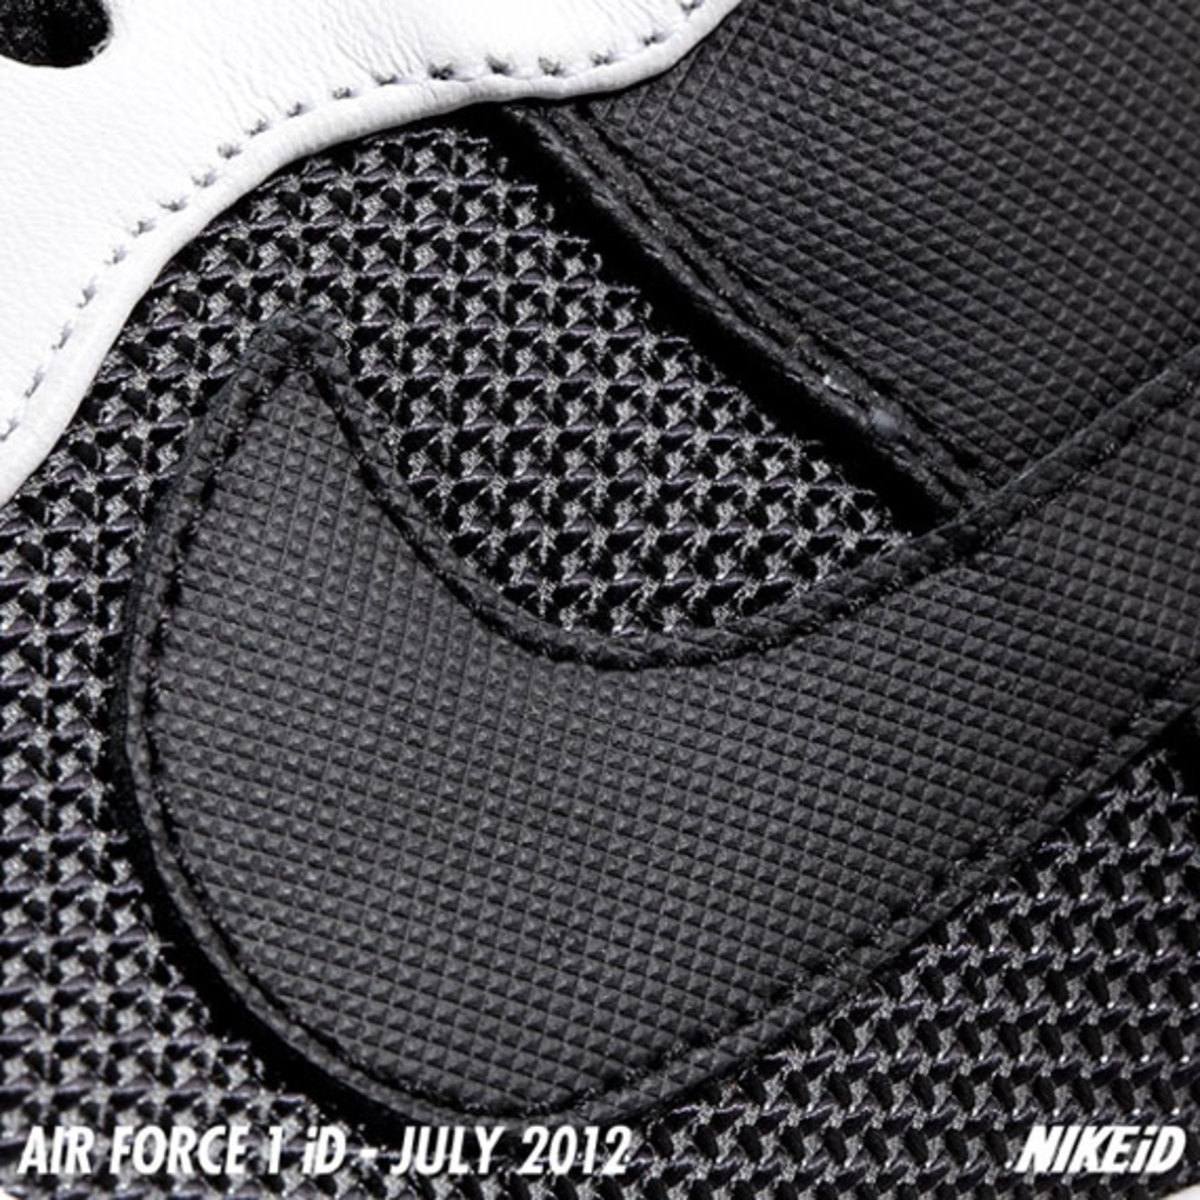 nikeid-air-force-1-id-tactical-mesh-grip-leather-design-july-2012-04